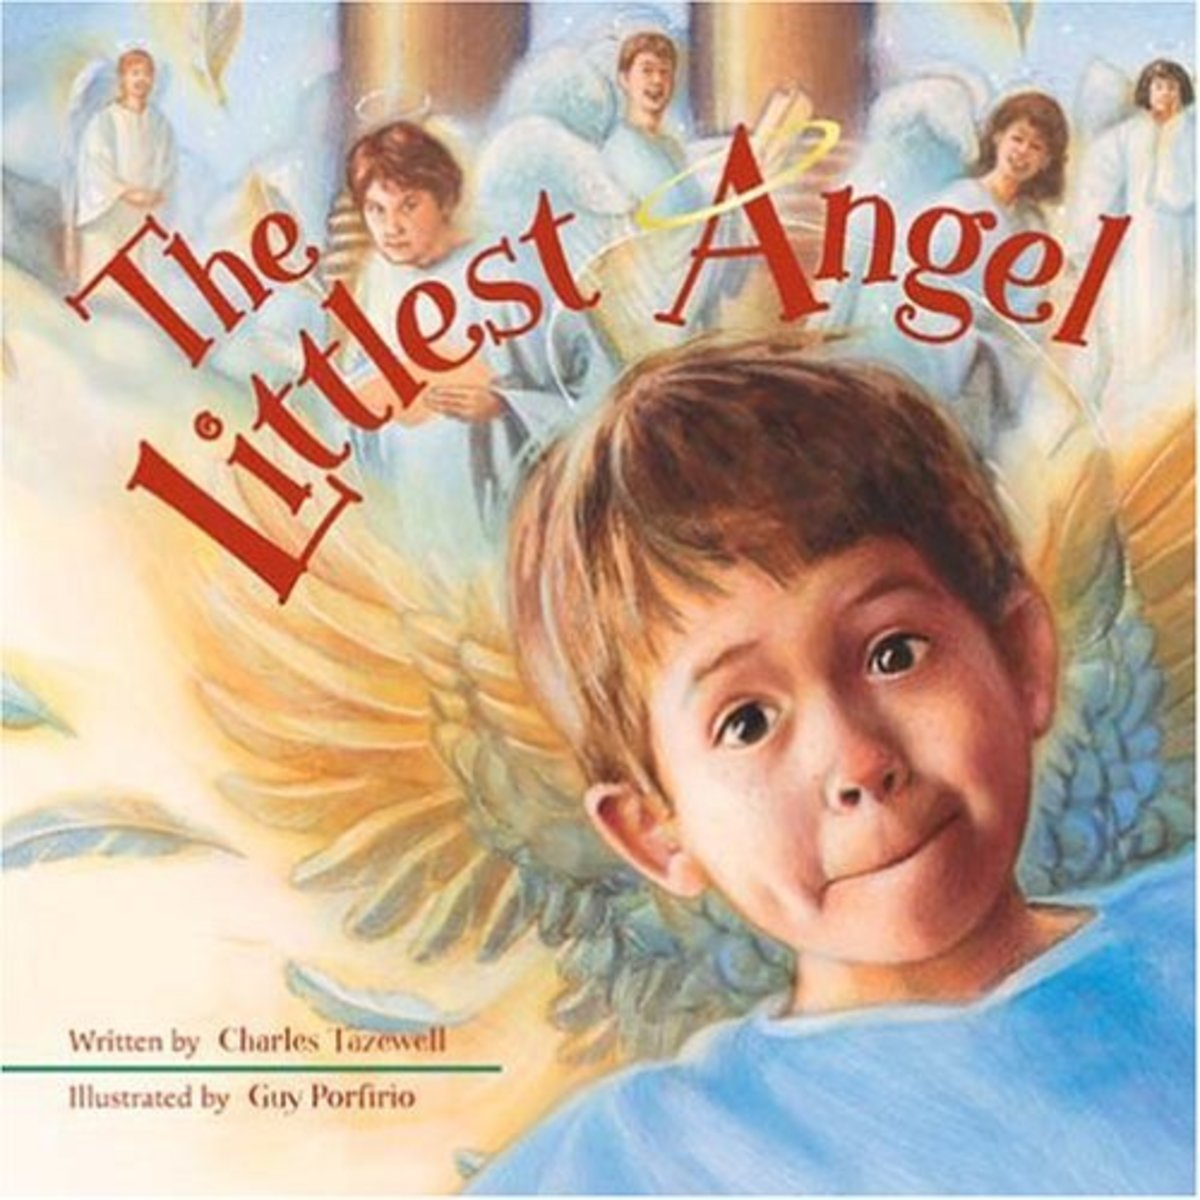 The Littlest Angel by Charles Tazewell, Christmas Story